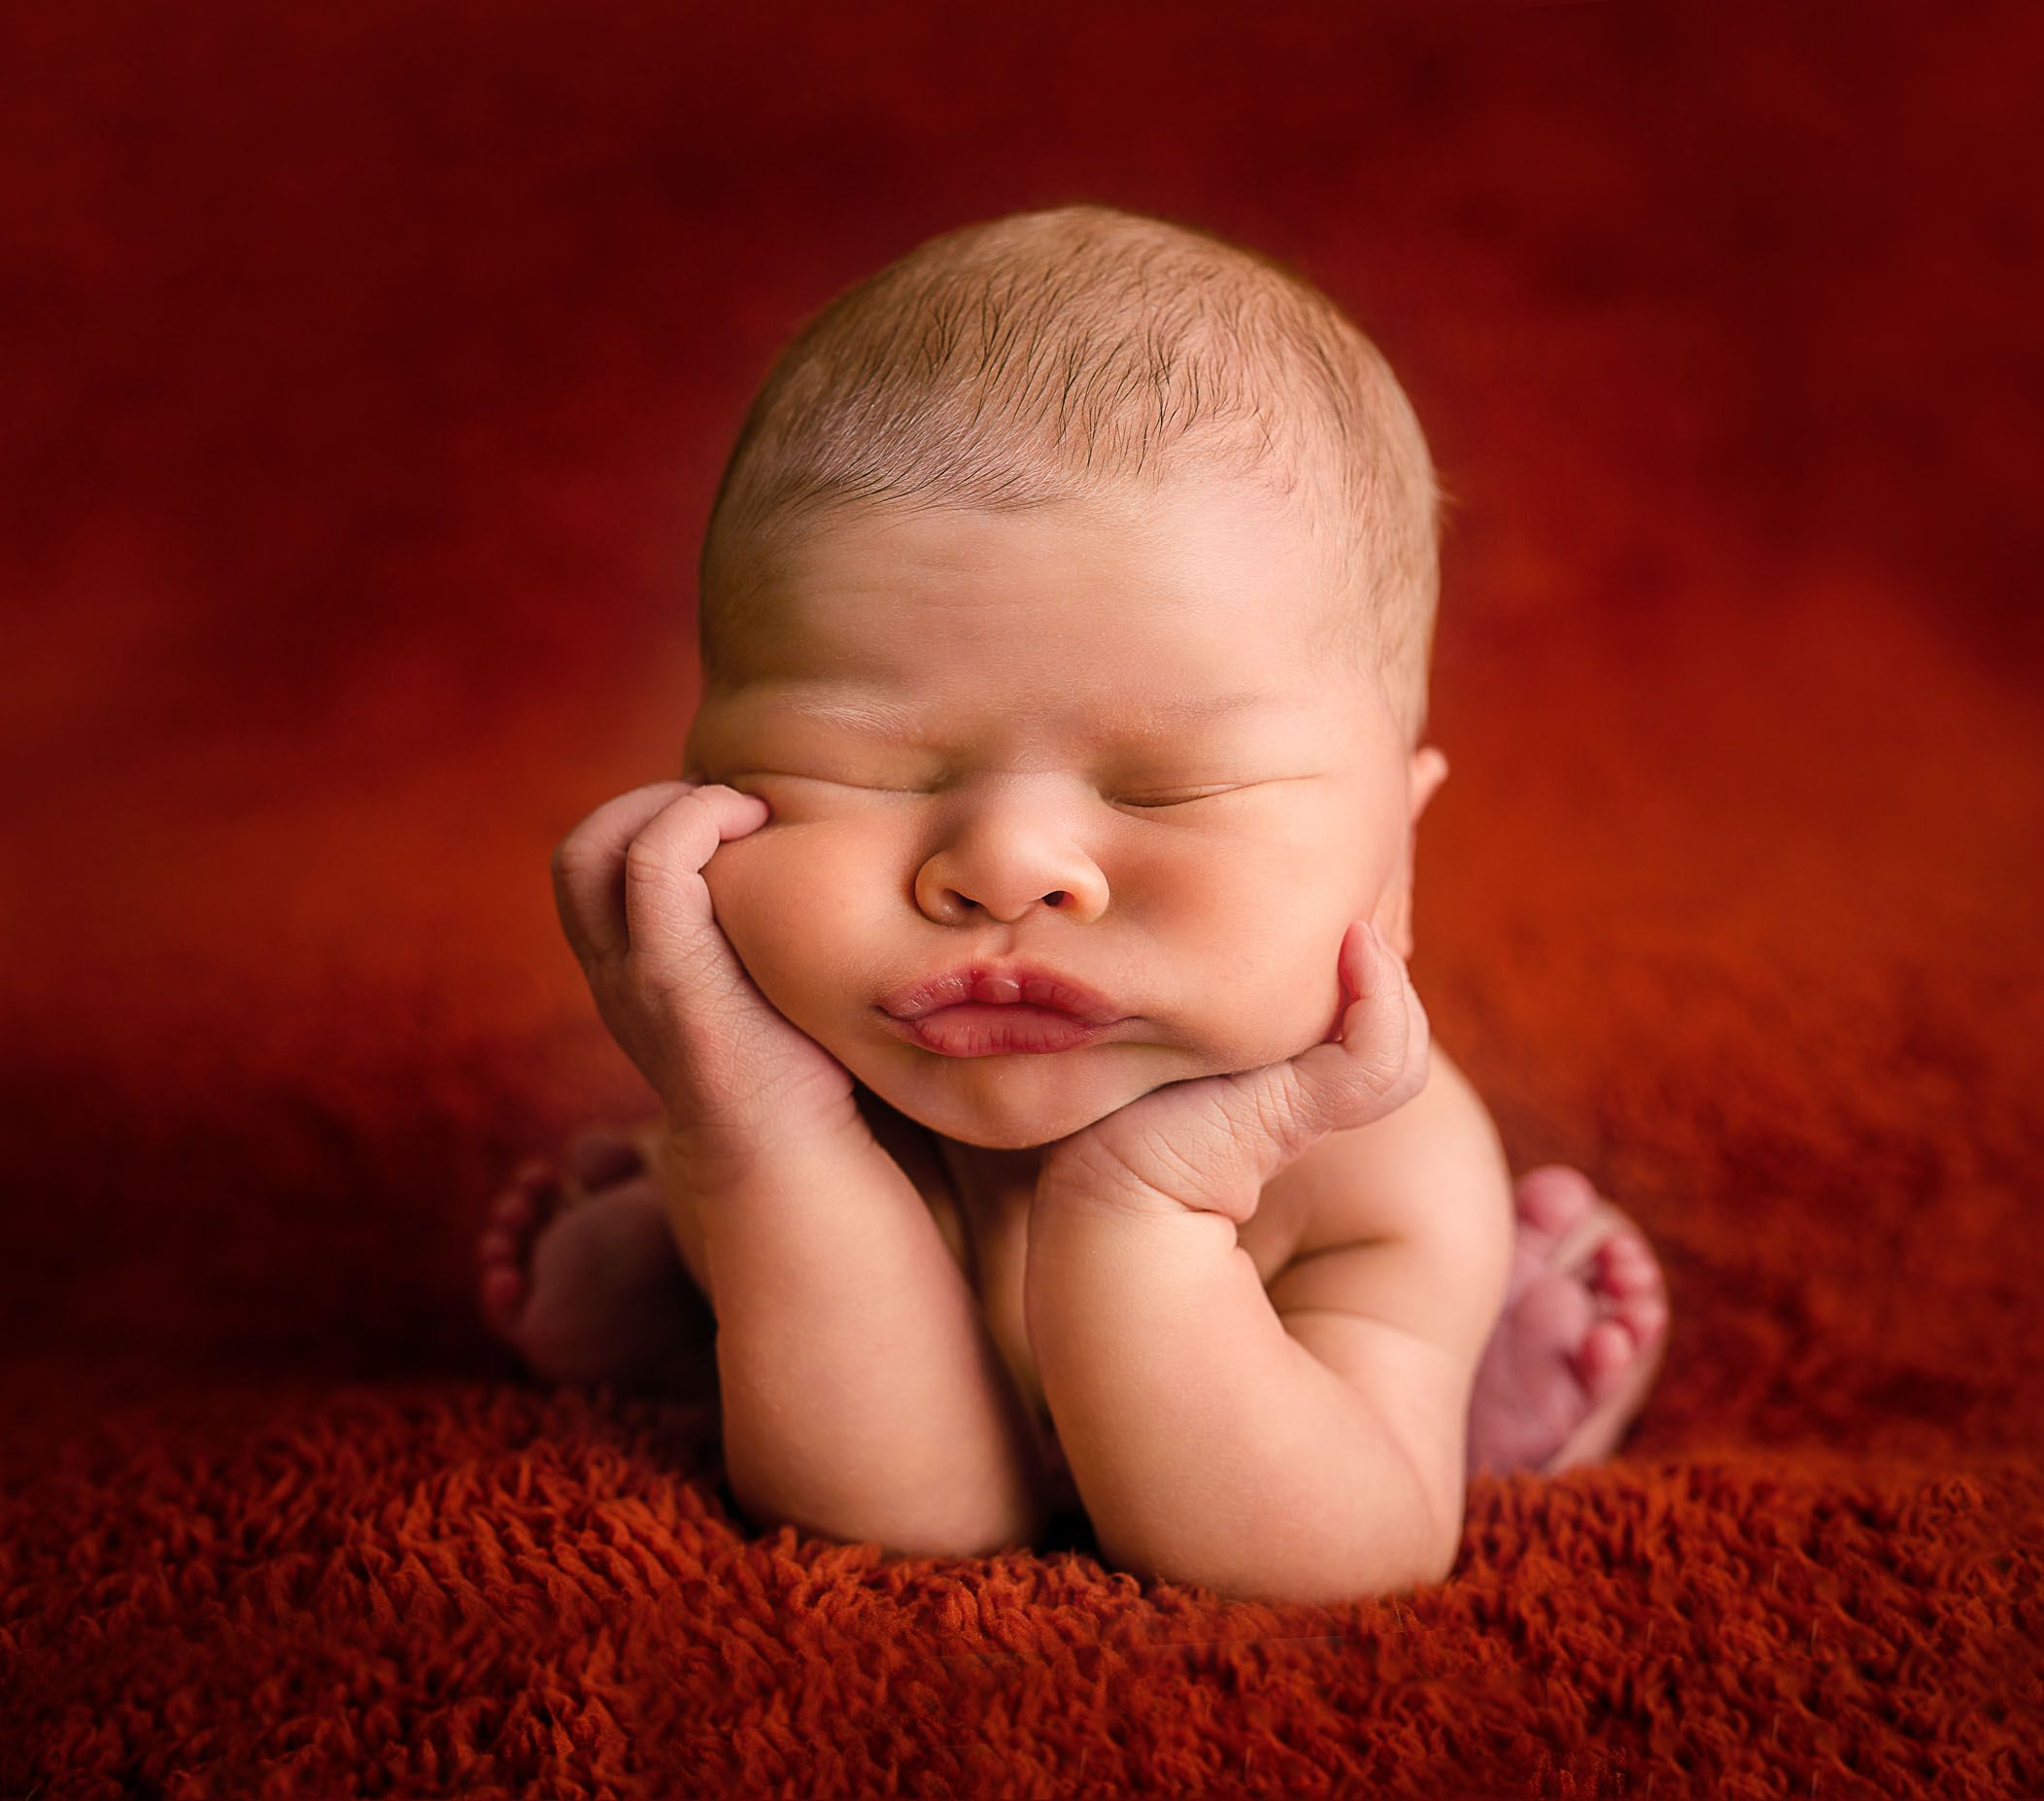 Newborn baby in froggy pose with pouty lips on red background